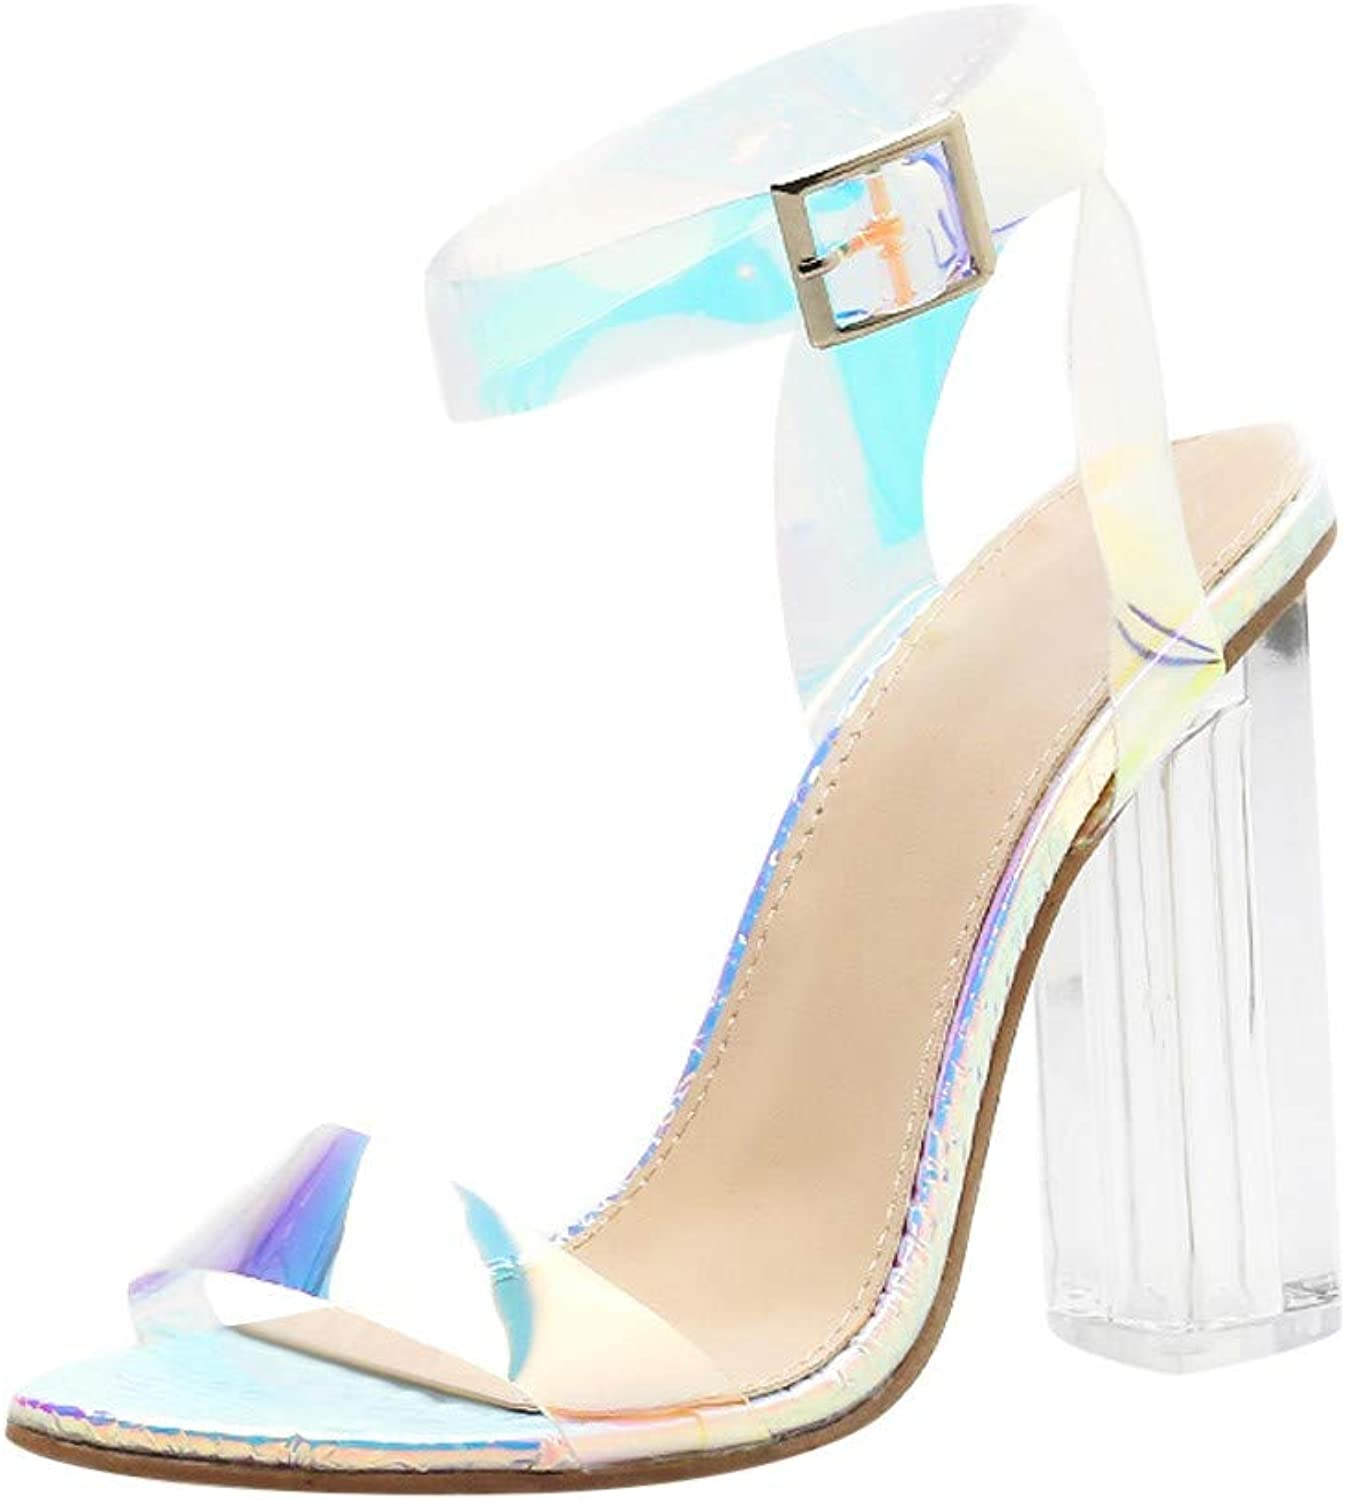 Women Chunky Block Heel Sandal - Ladies Fashion Clear Peep Toe Ankle Strap Buckle Sandals - Prom Club Party Pump shoes